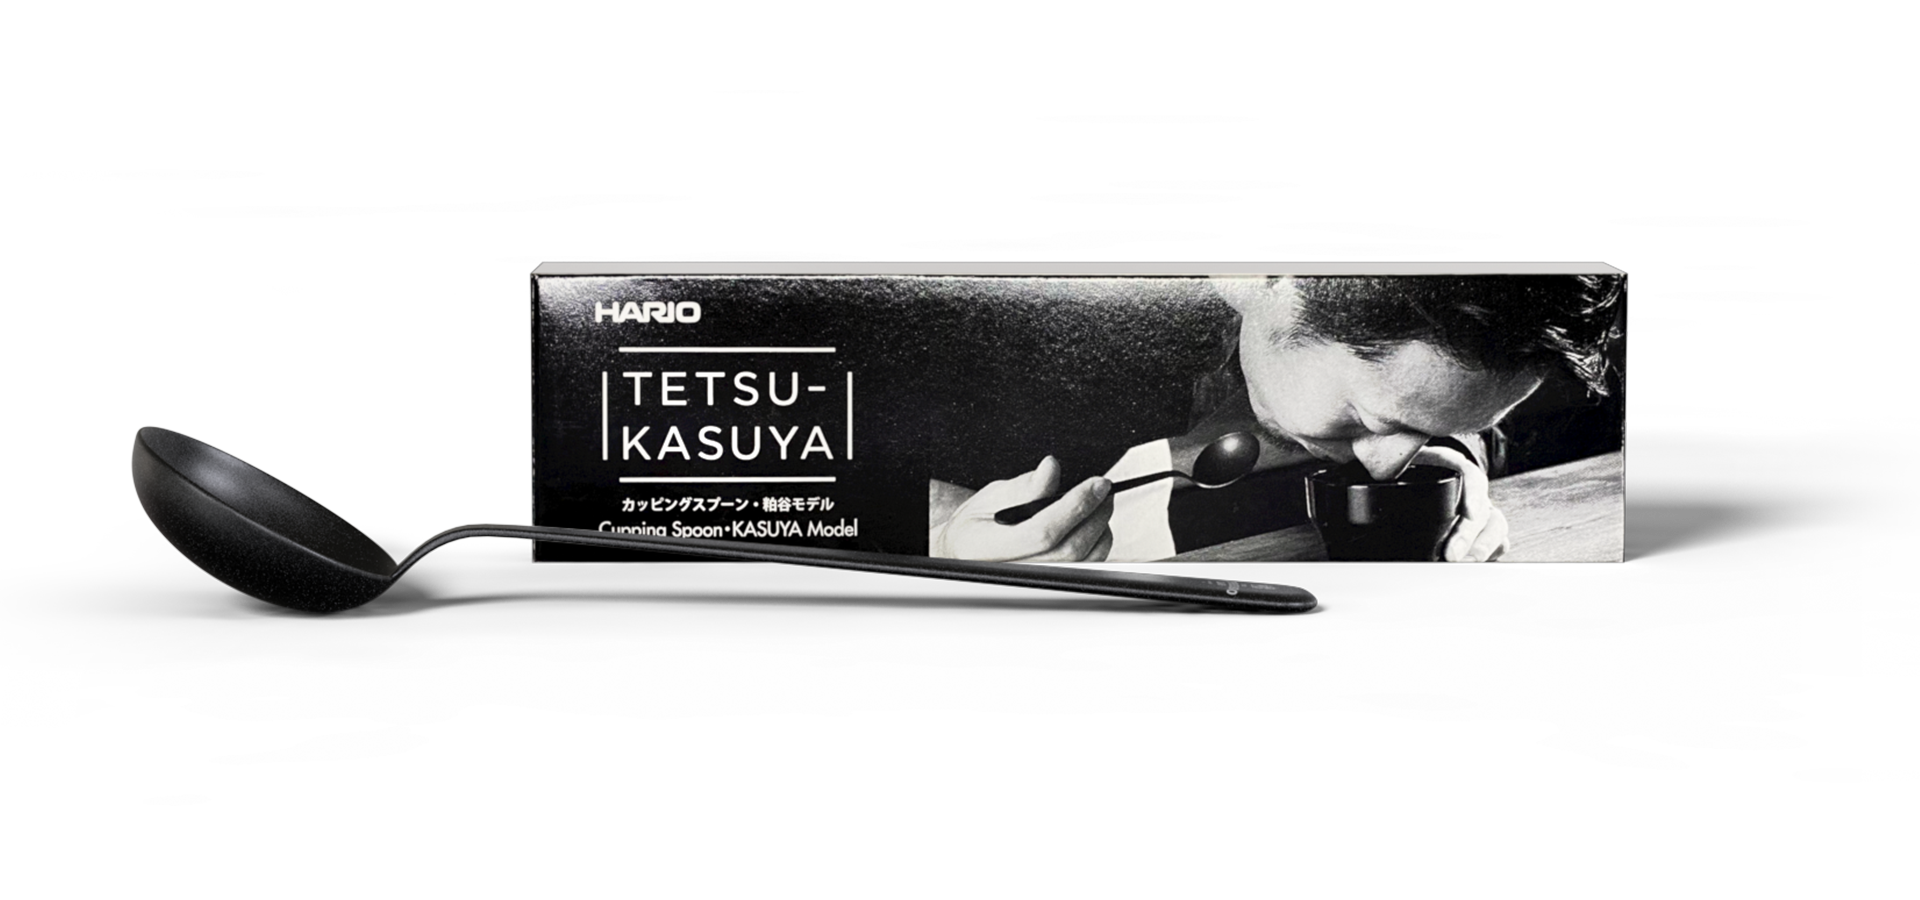 Hario Cupping Spoon Tetsu Kasuya Model with Box photographed at The Espresso Lab Roastery